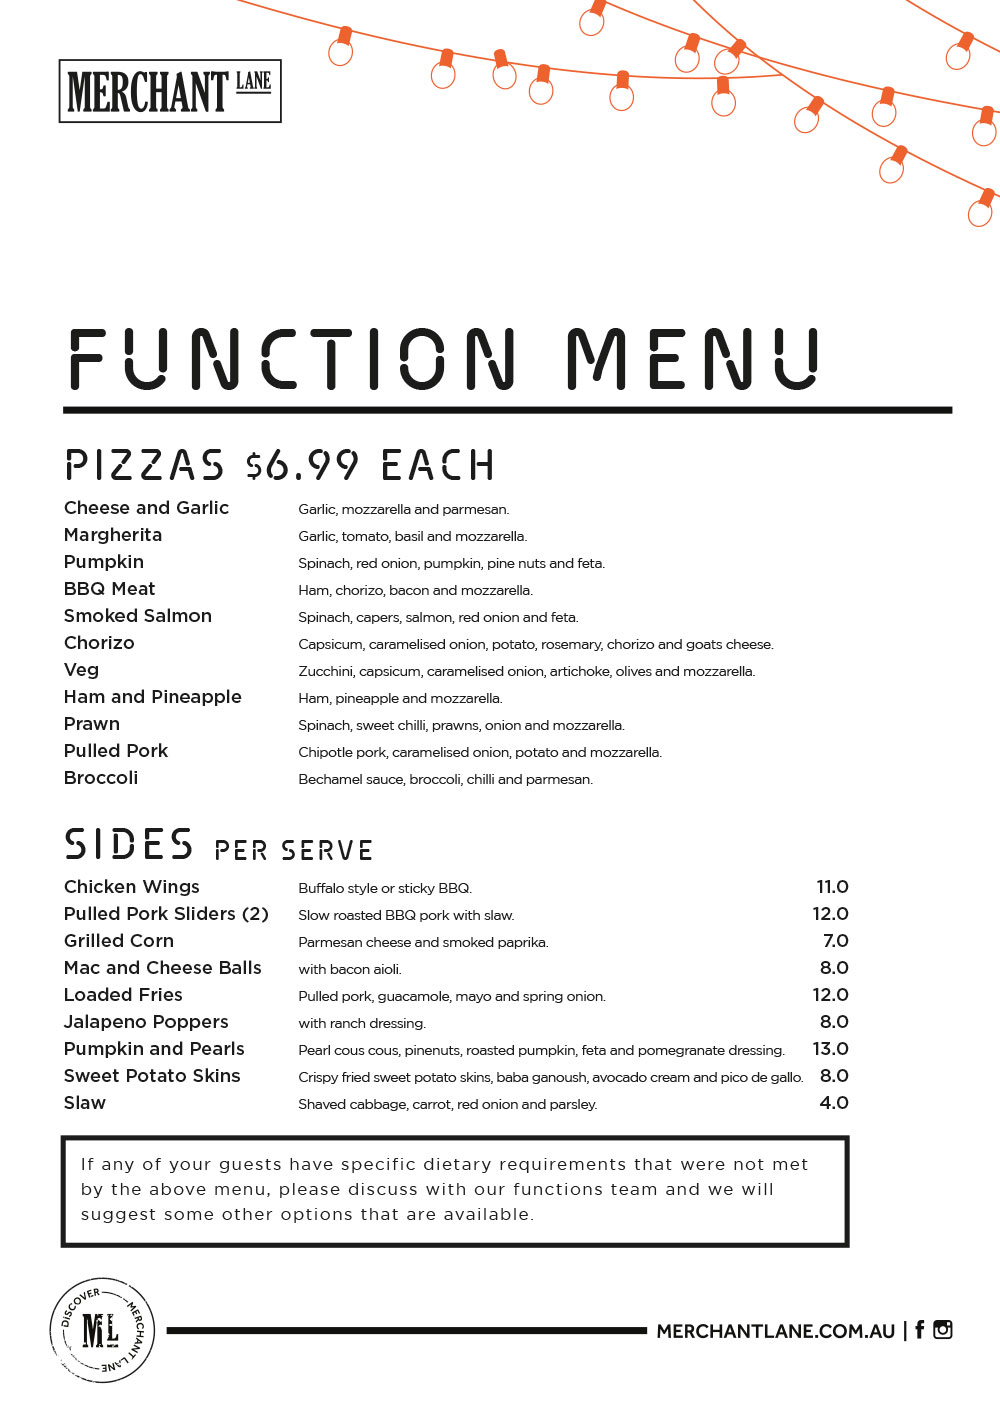 Merchant Lane Pizza Function Menu